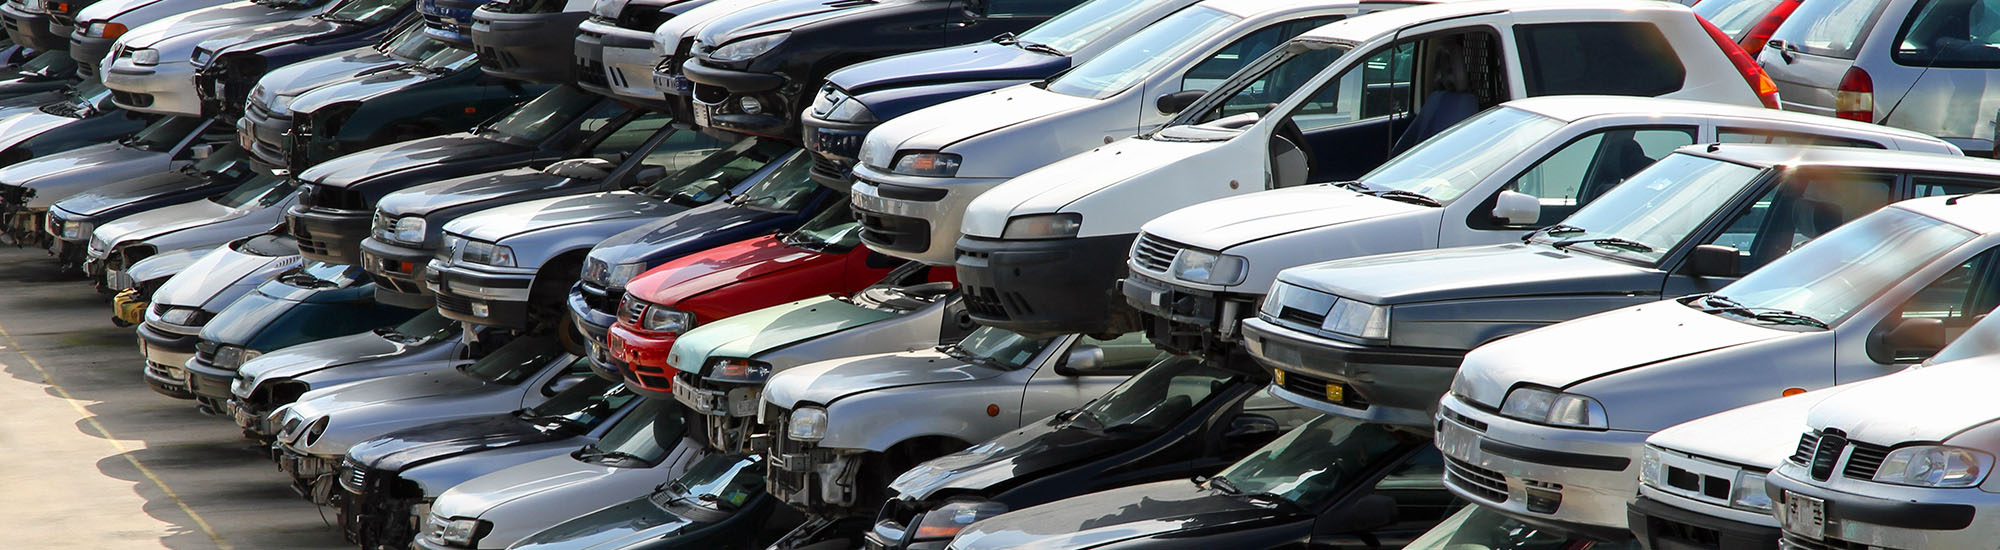 Top Prices Paid For Scrap Vehicles